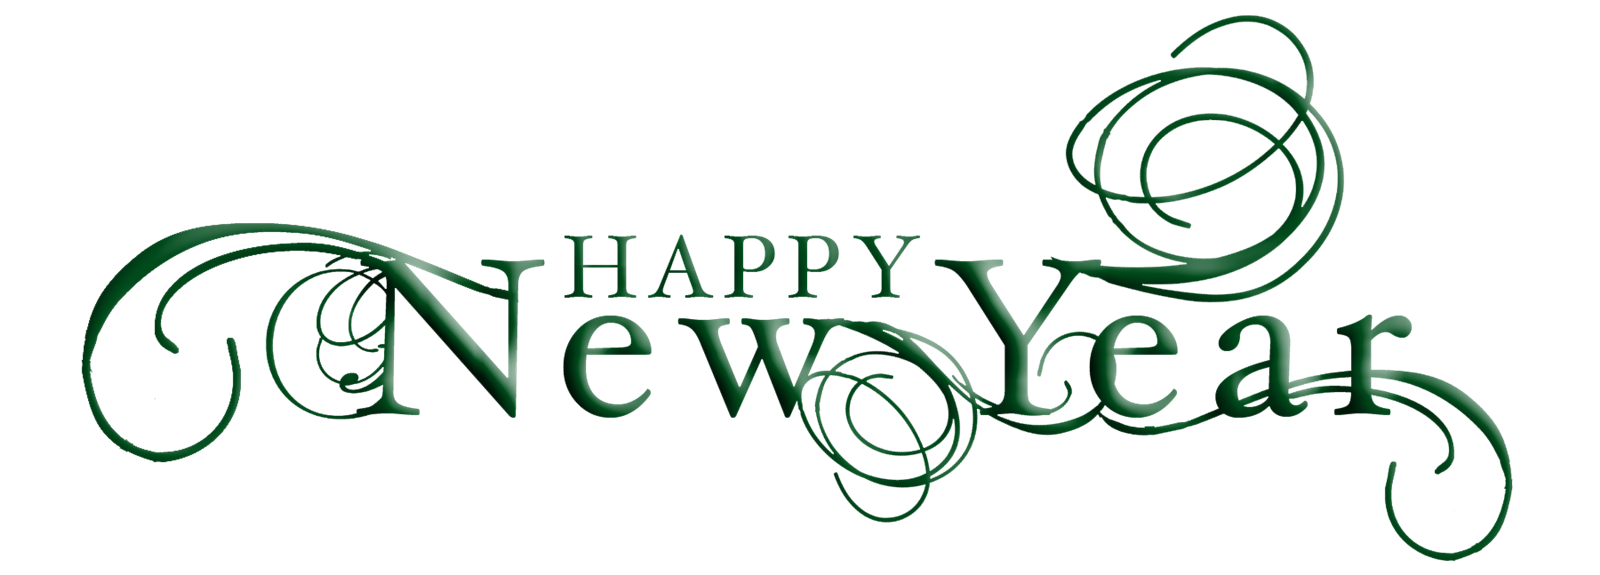 Happy-new-year-2018-black-and-white-hd-pictures-messages-New-year-2018-sms-wallpaper-3.png